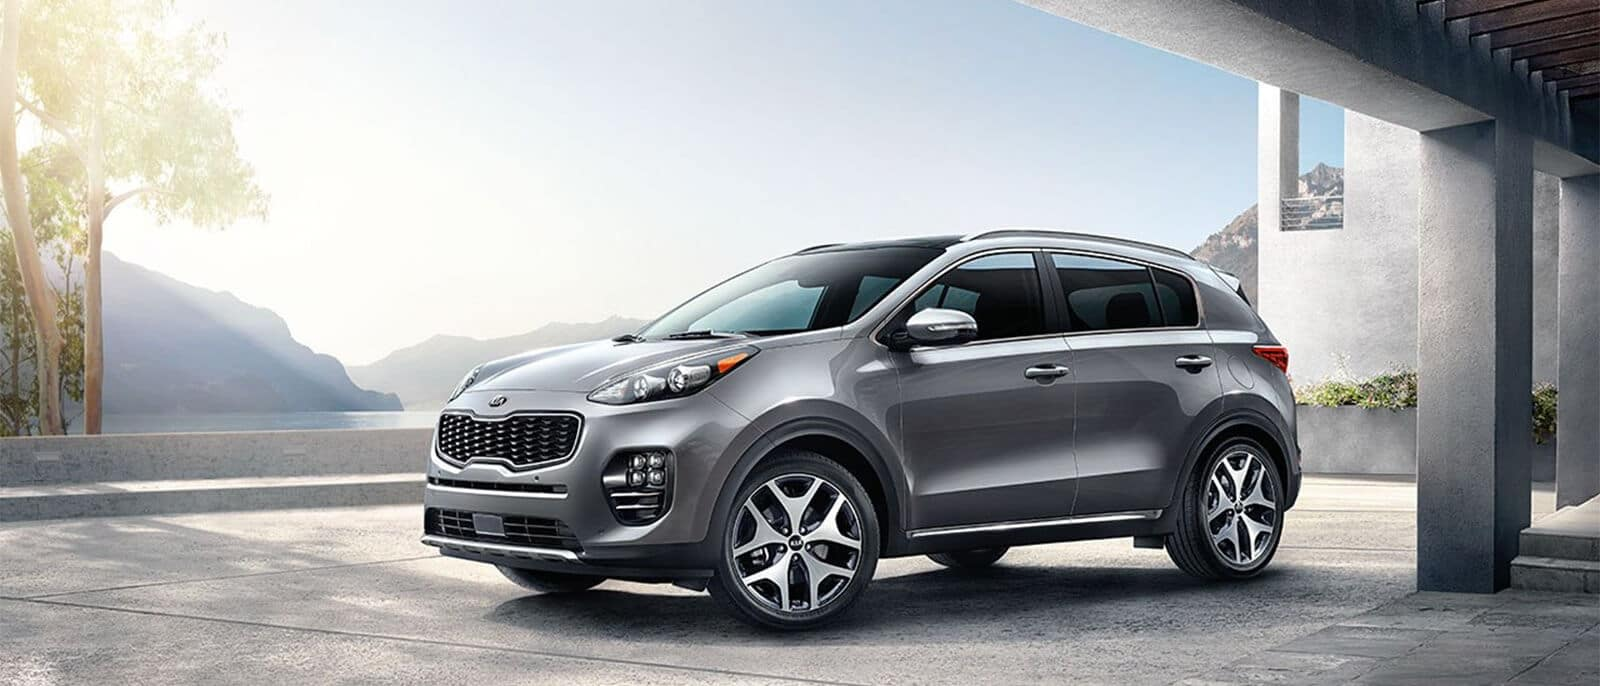 2018 Kia Sportage SX Turbo Parked